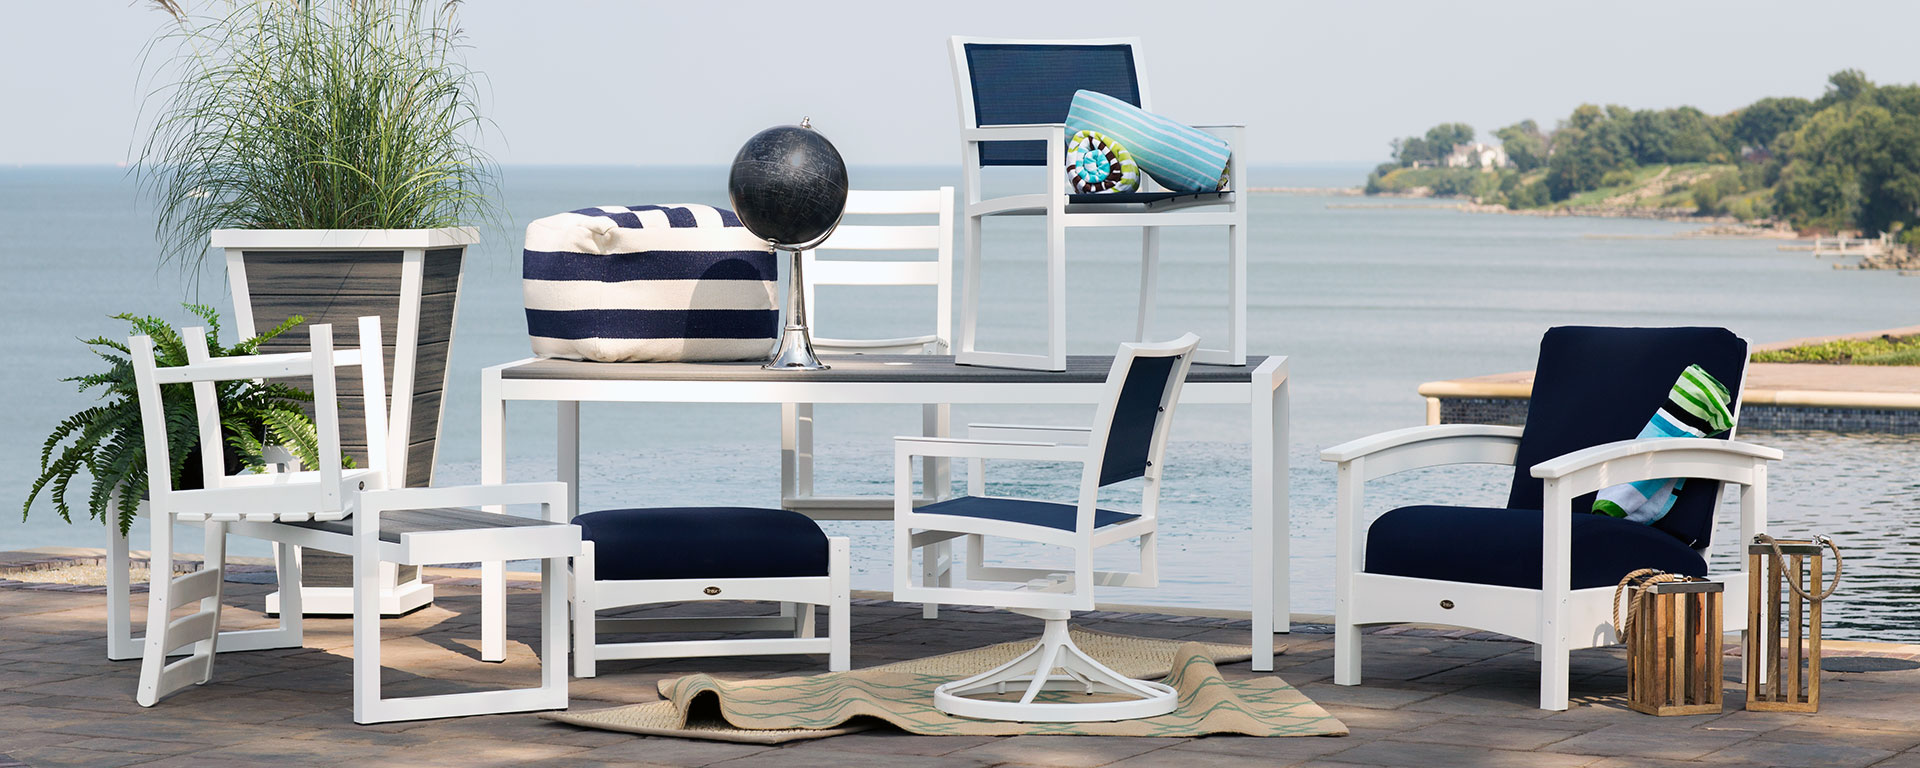 Ready set go choose the right outdoor furniture set for Outdoor living furniture